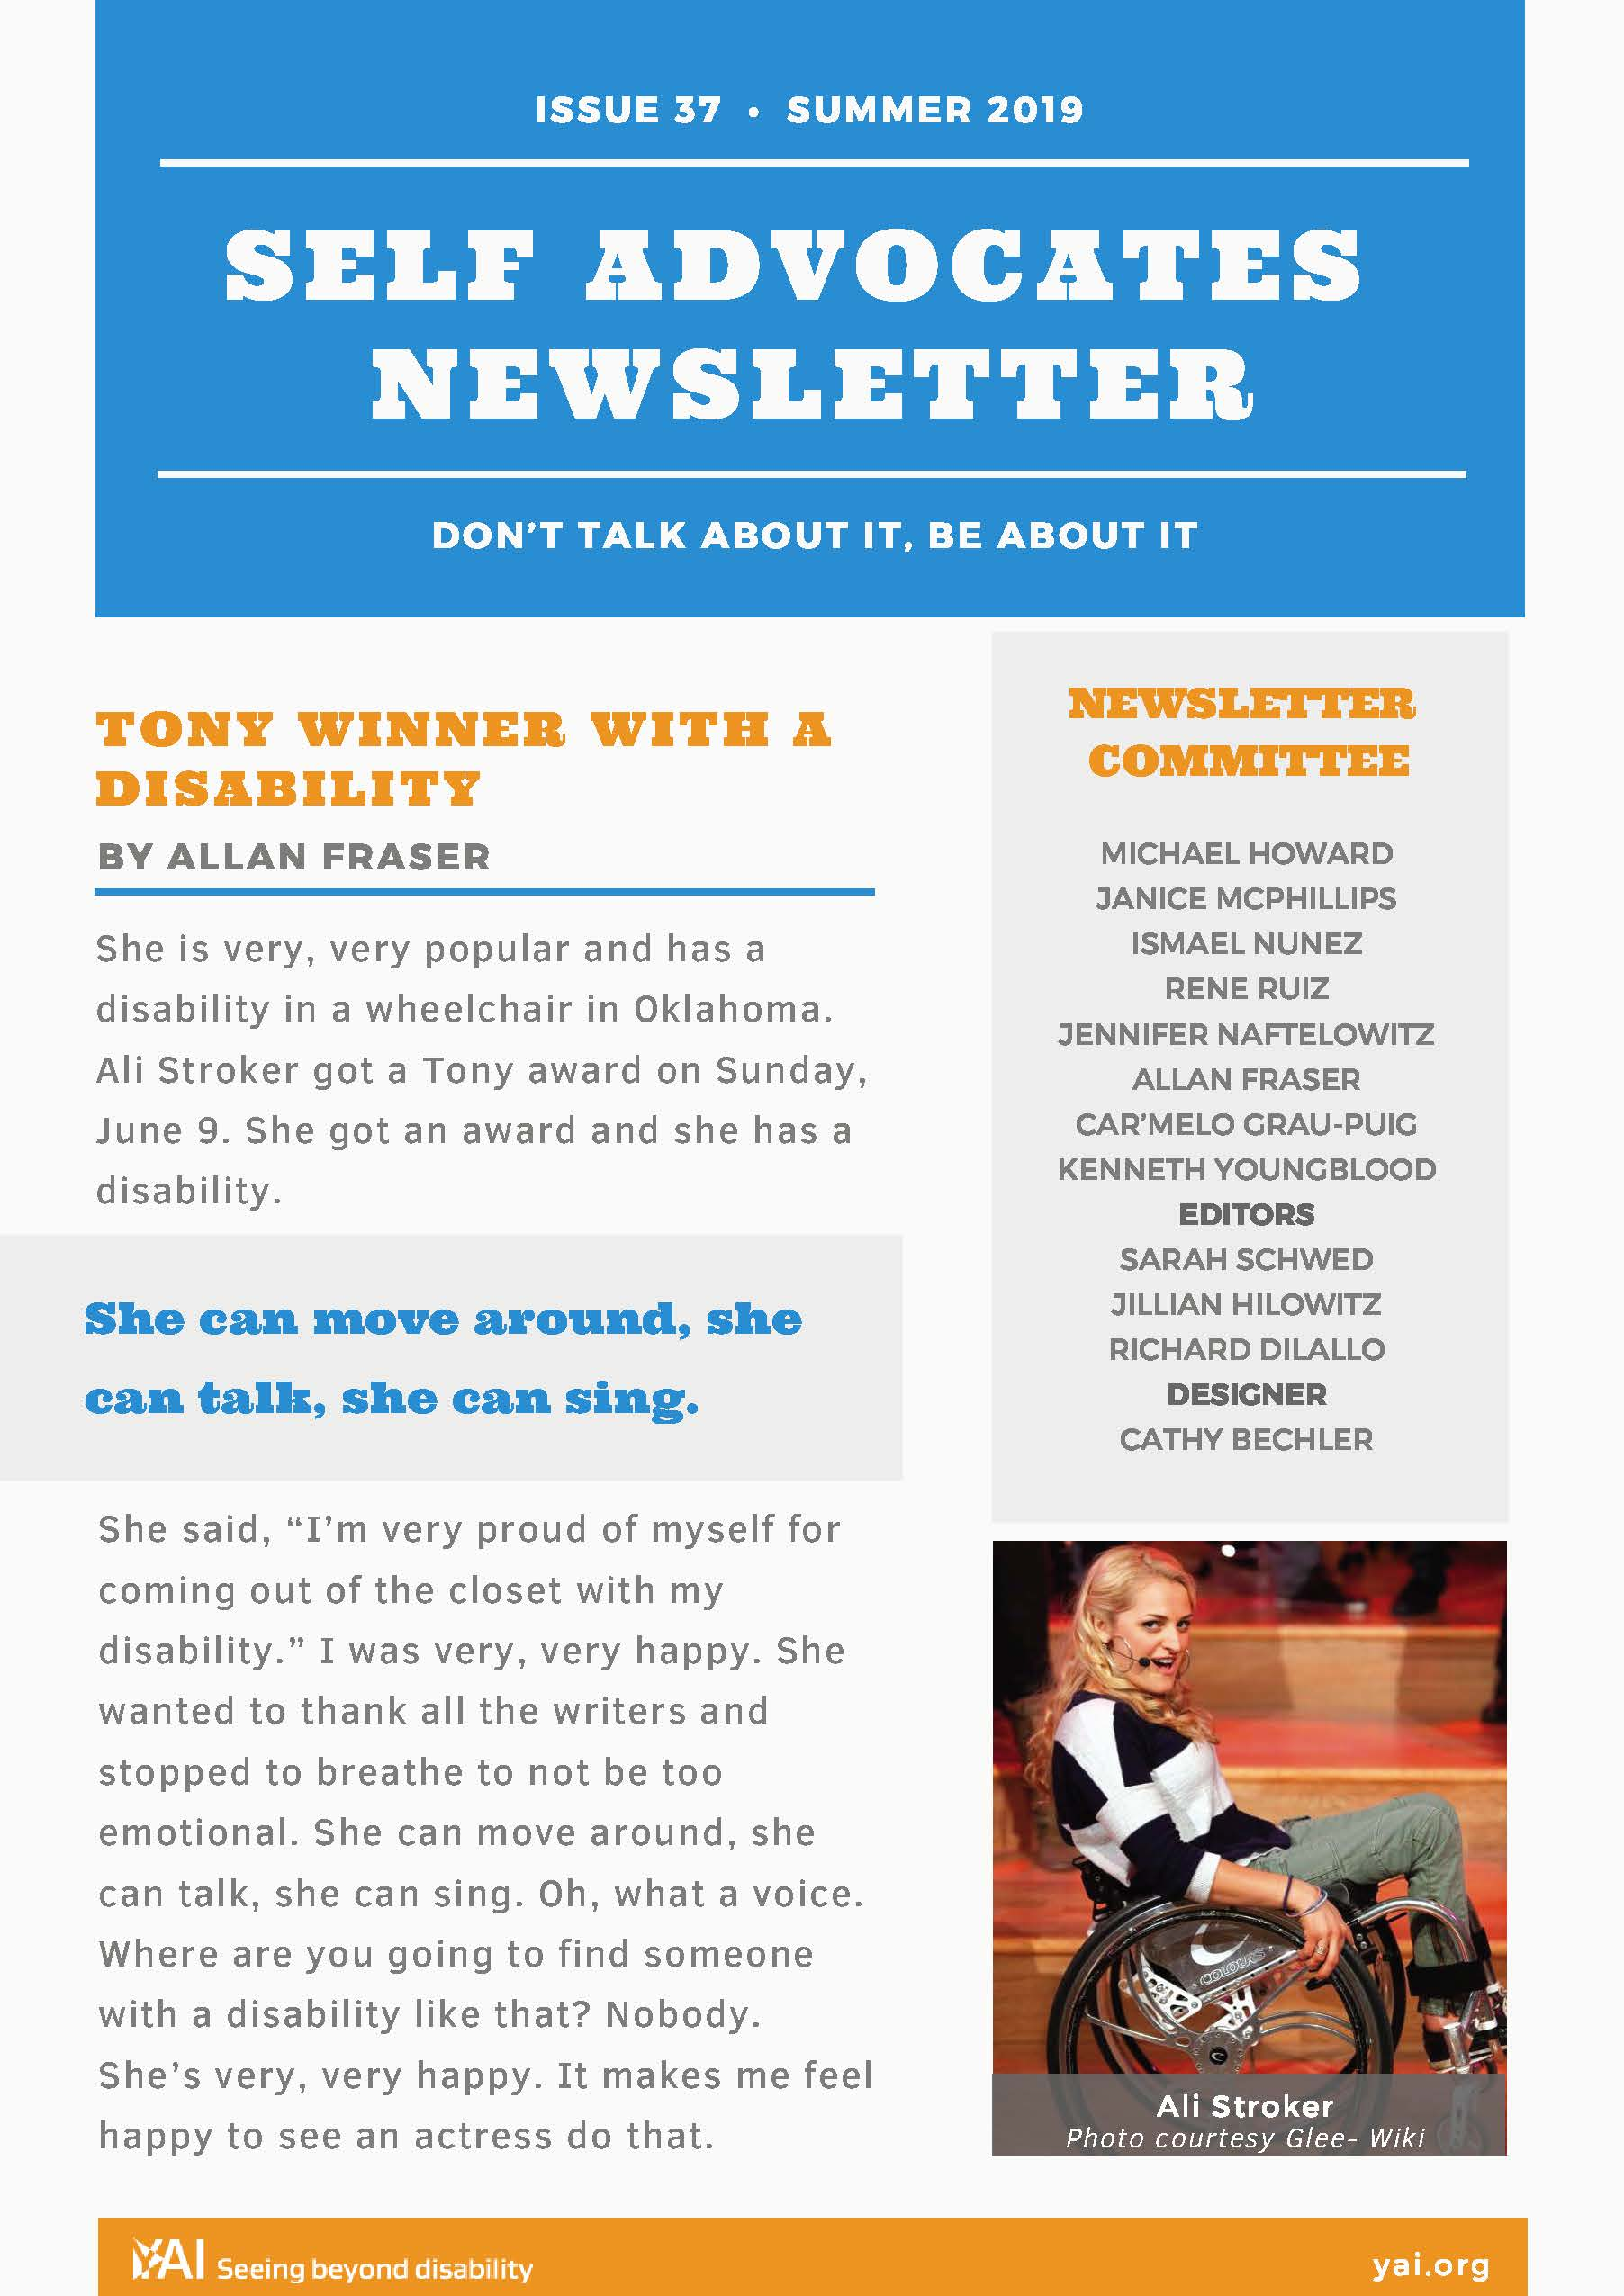 Front page of the Summer 2019 Self Advocate Newsletter